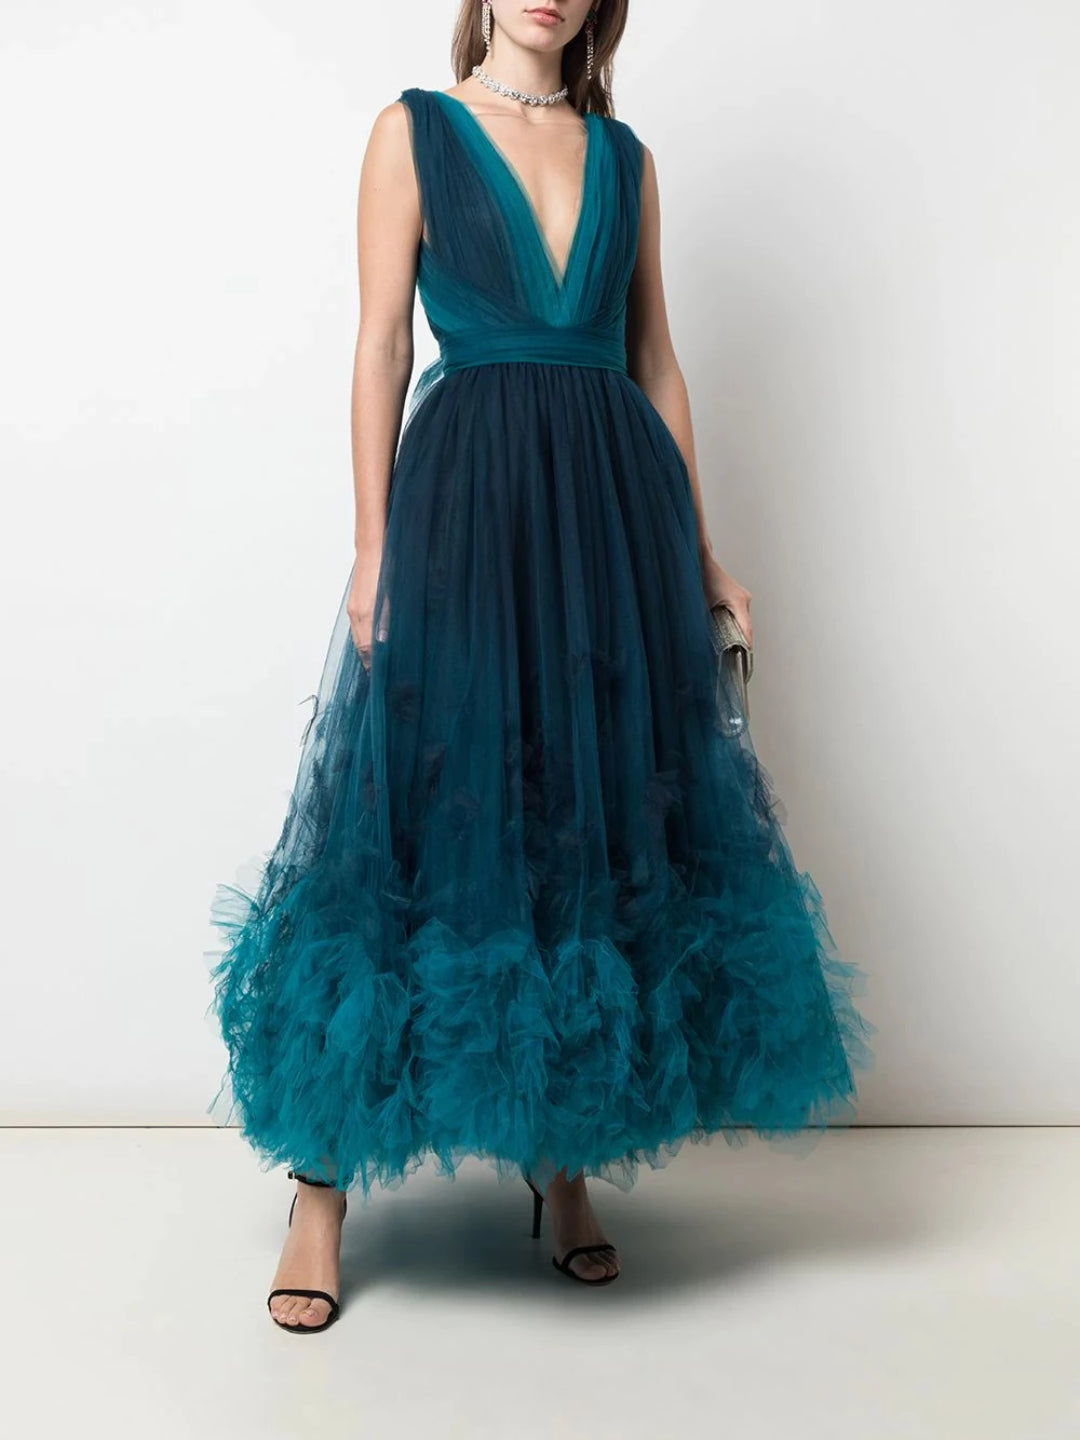 Deep V-Neckline Ombre Textured Cocktail Dress